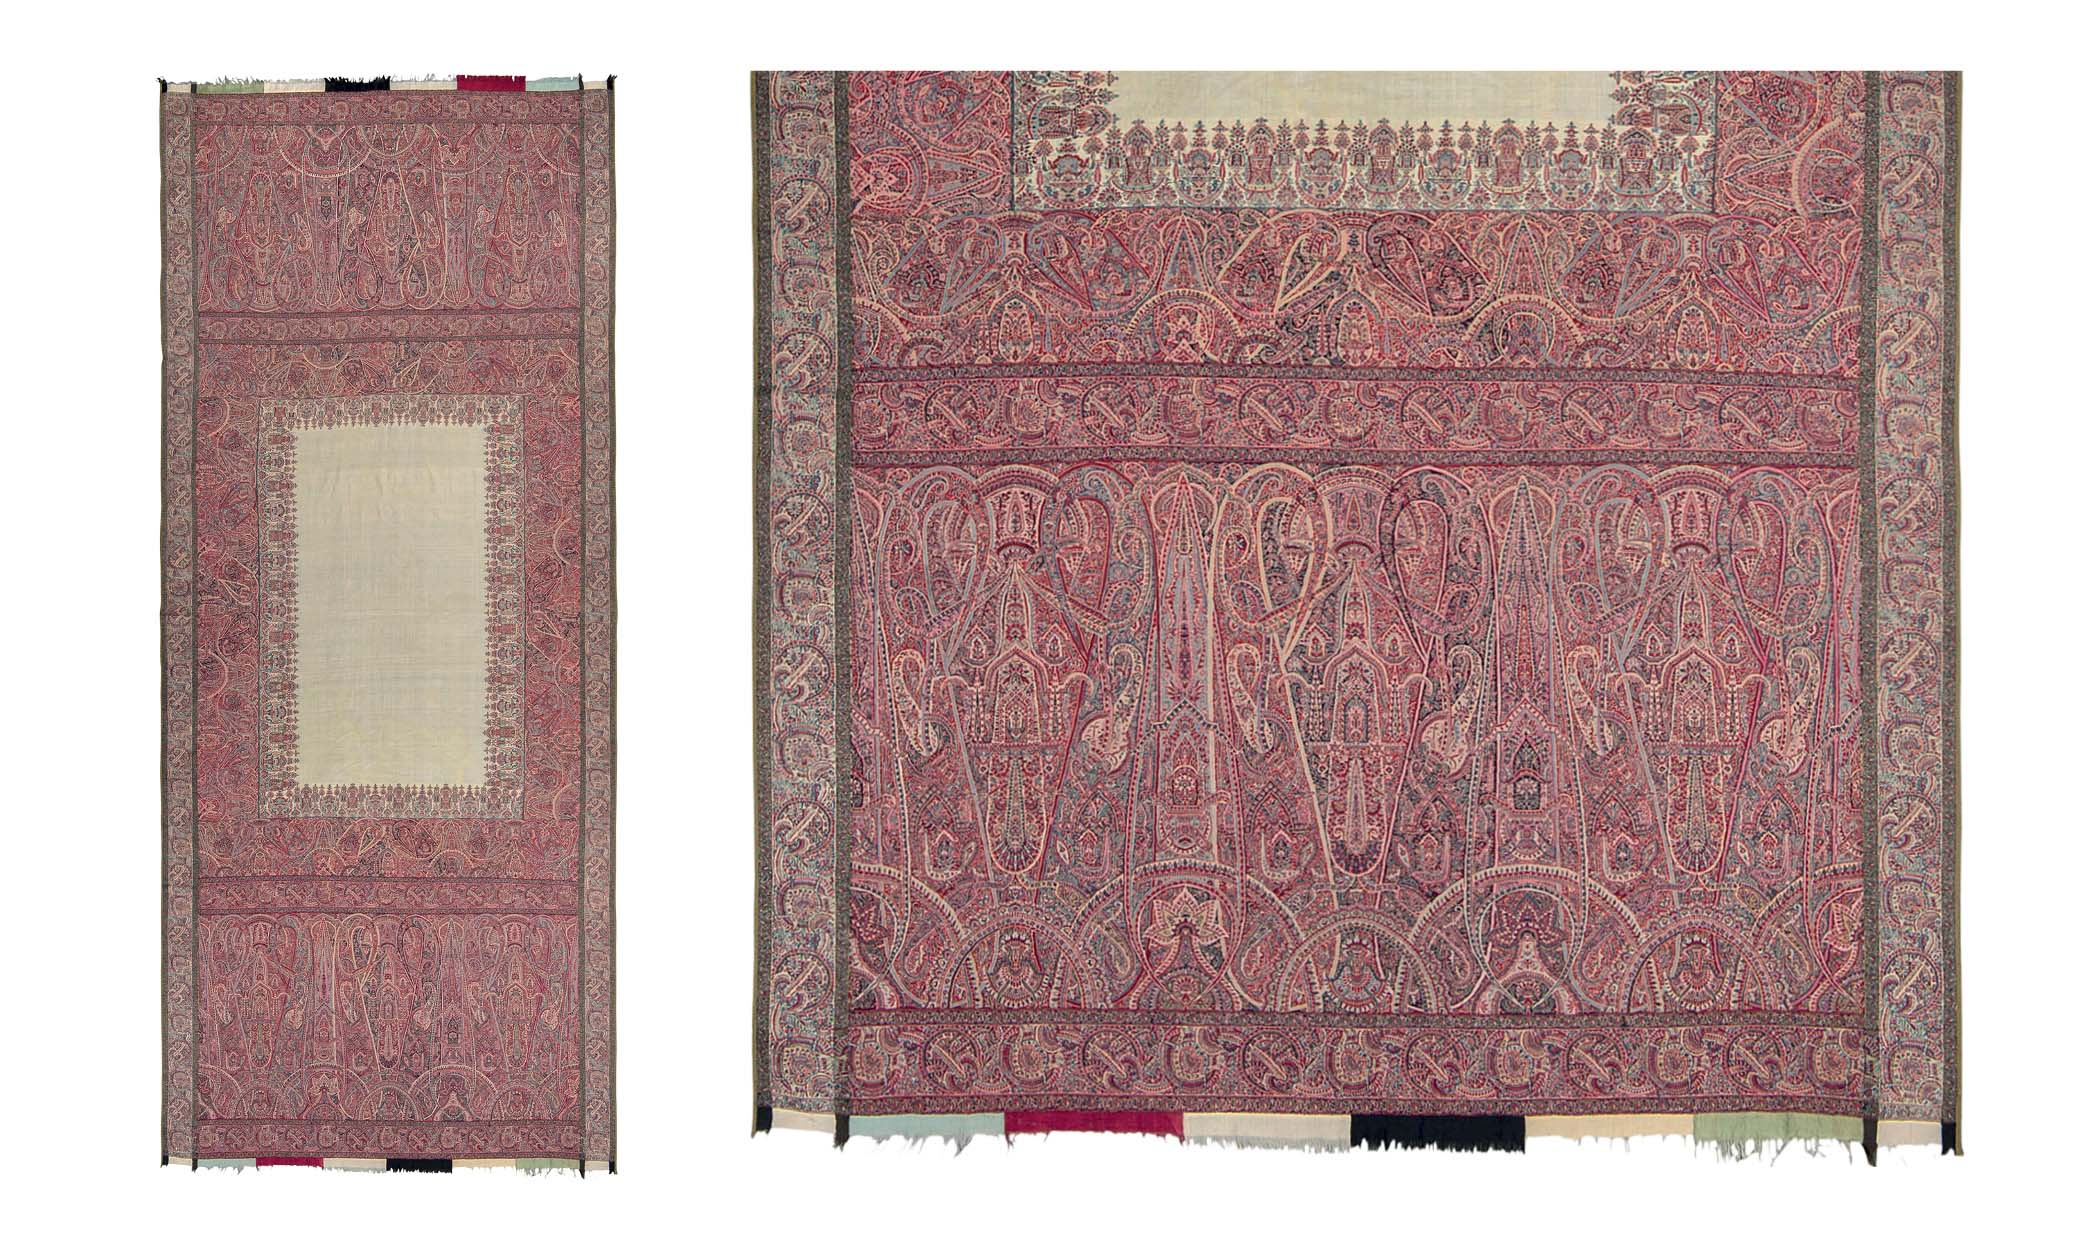 Lot 2: LONG SHAWL (DOCHALLA). NORTH INDIA, CIRCA 1840.